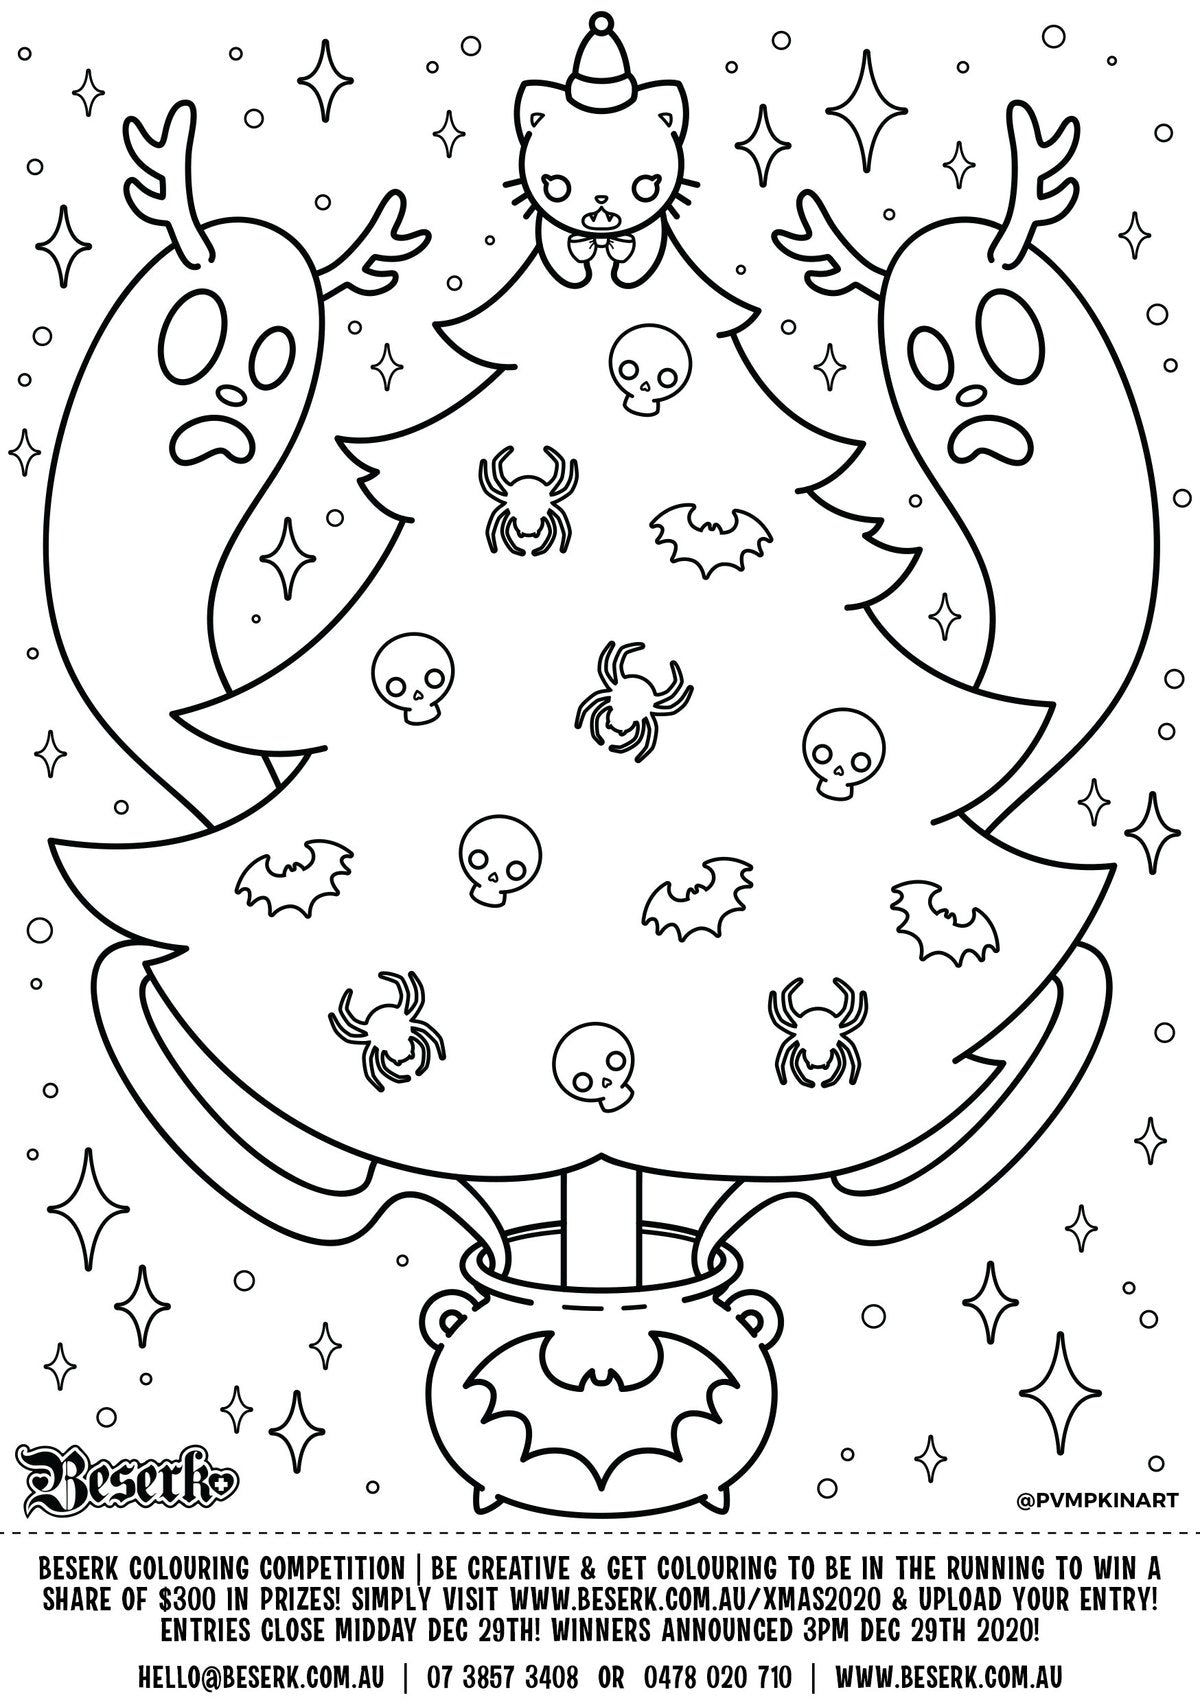 Beserk Christmas 2020 Colouring Competition